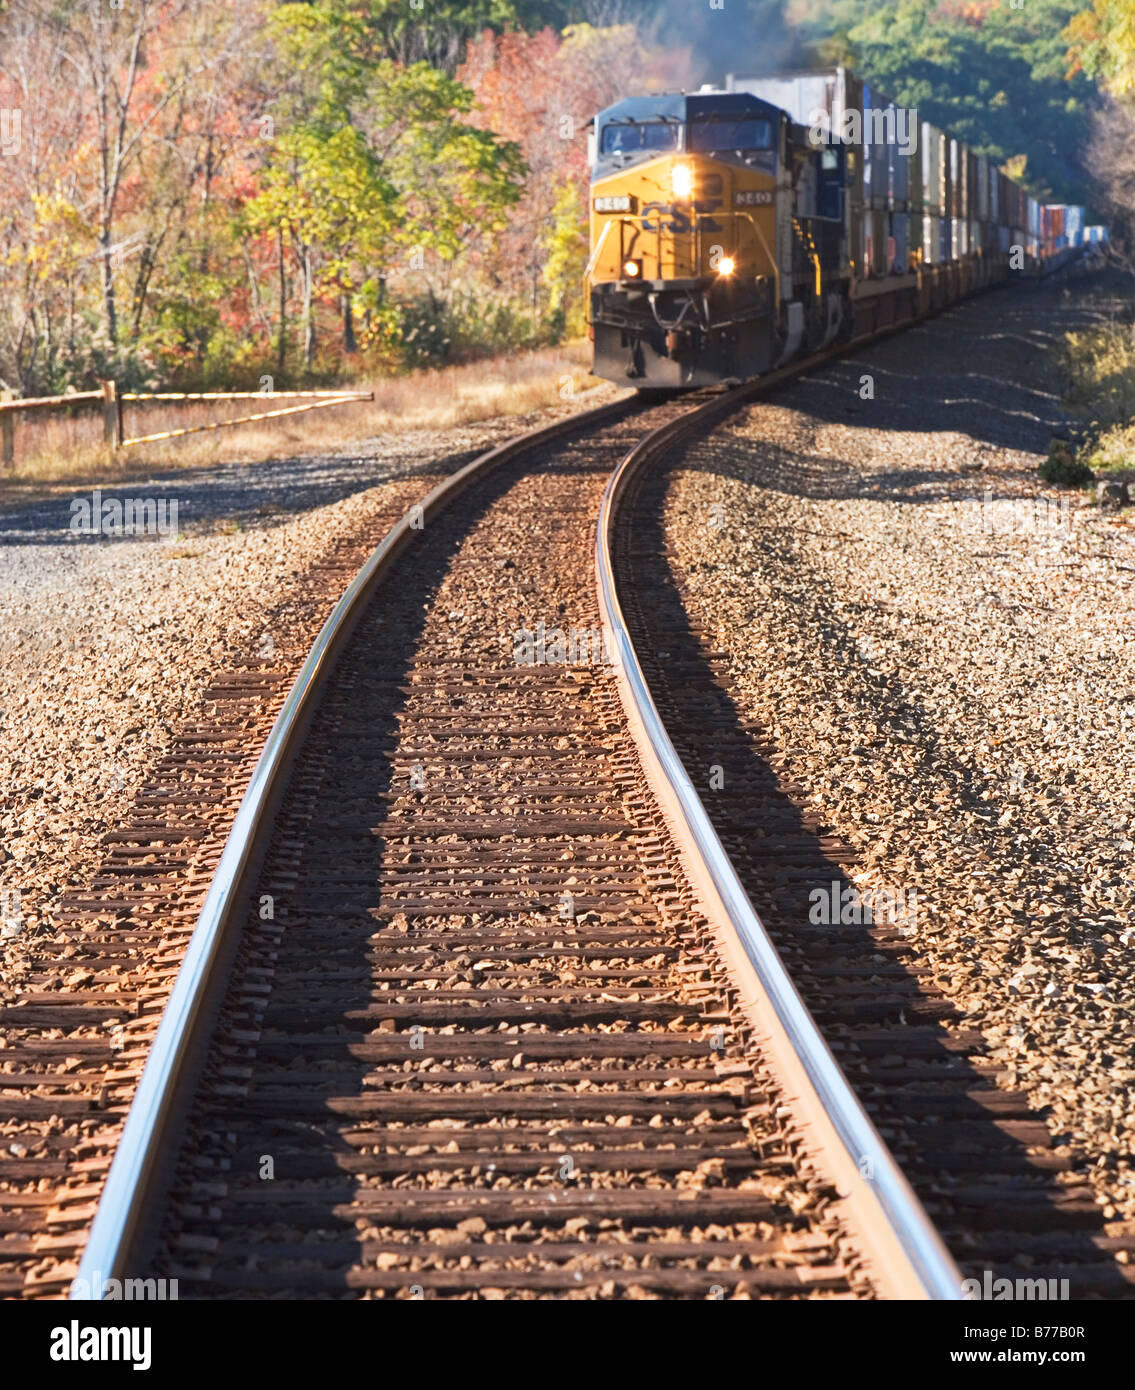 Freight train moving down tracks - Stock Image